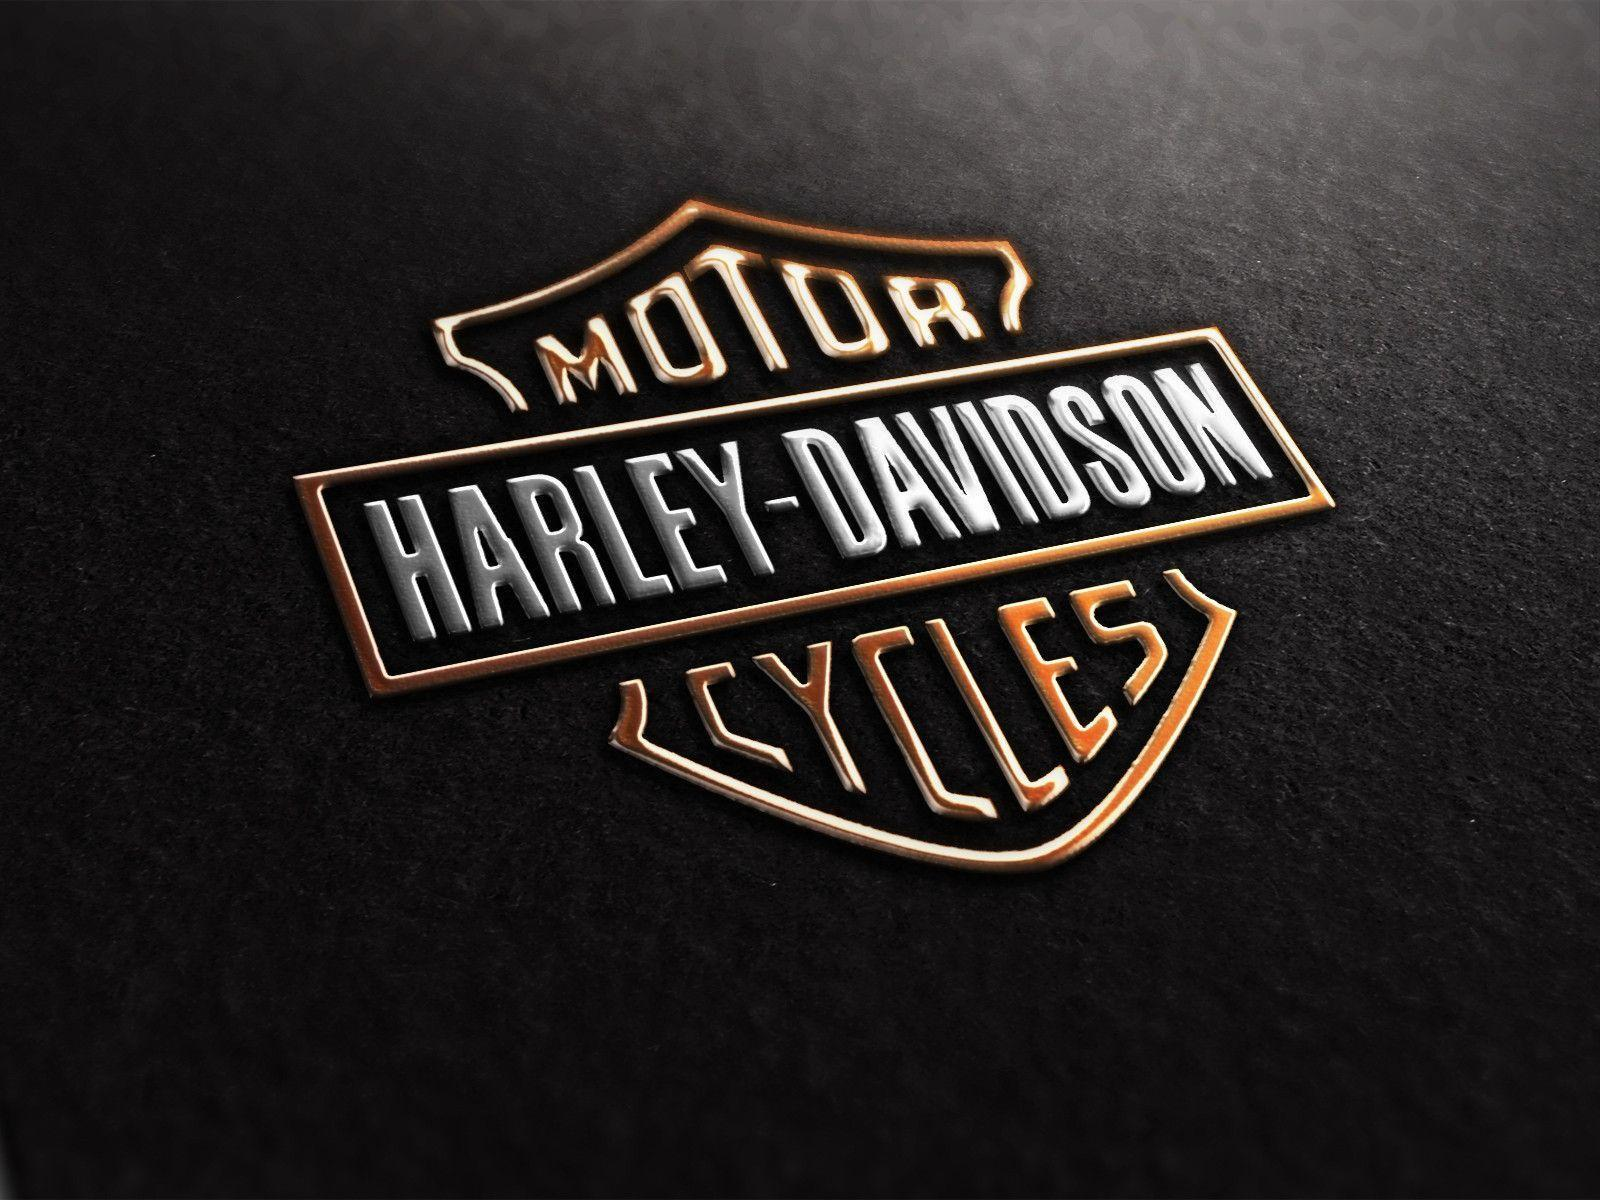 newest harley davidson logo wallpapers - photo #8